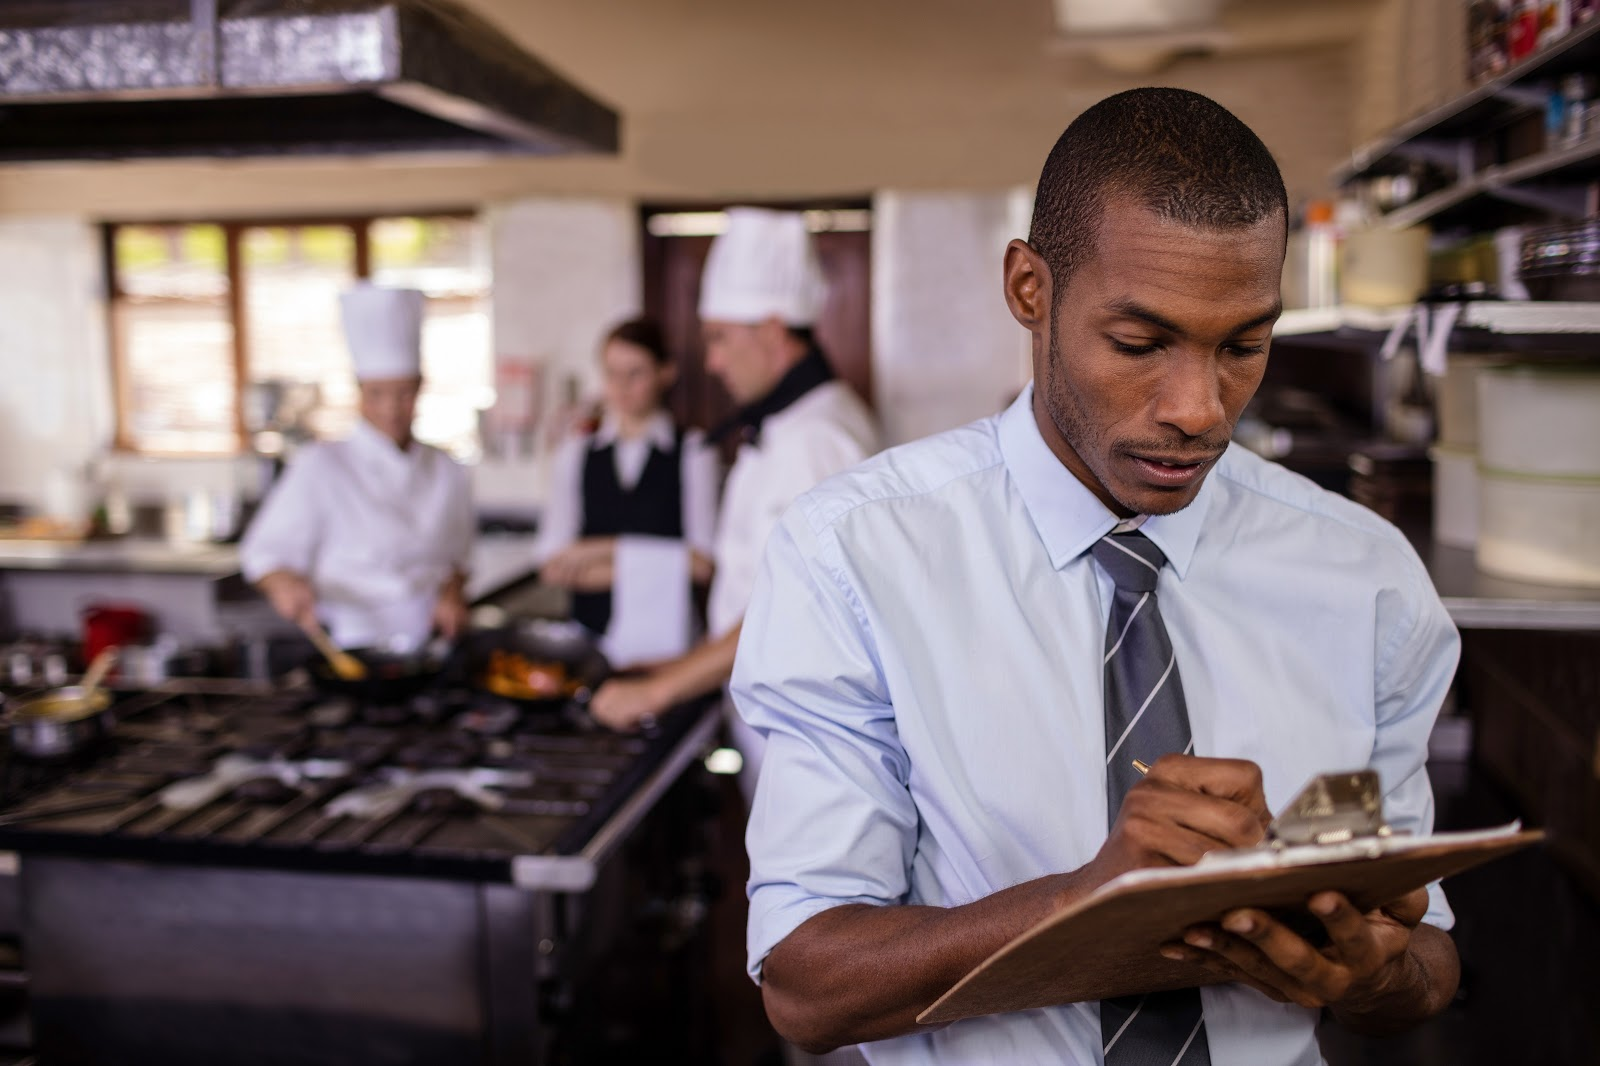 Man takes notes on clipboard with kitchen staff in background